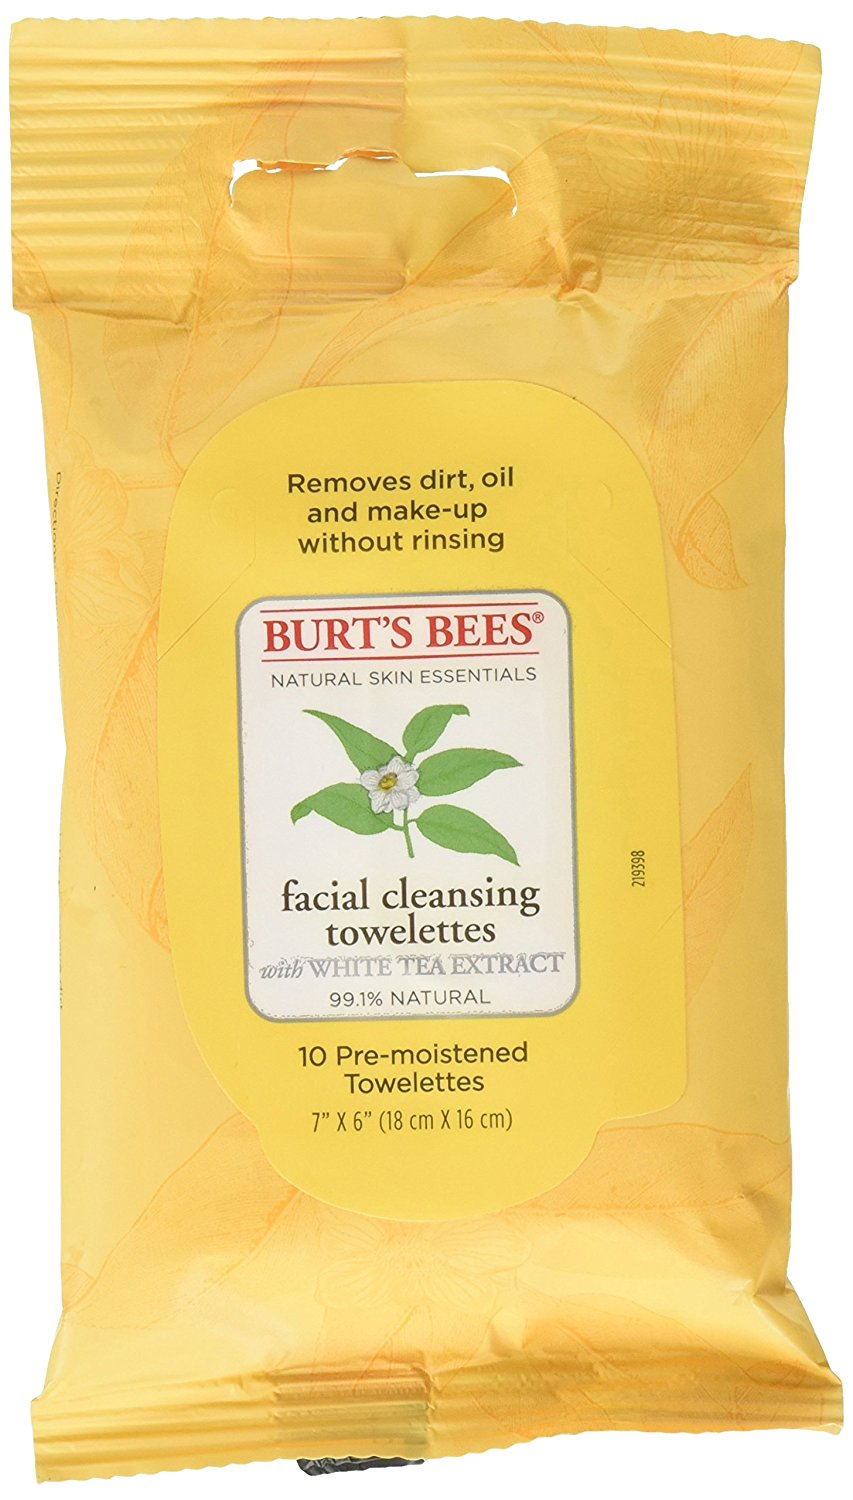 Burts Cleansing Tissue Wh Size 10ct Burts Cleansing Tissue Wh Tea 10ct